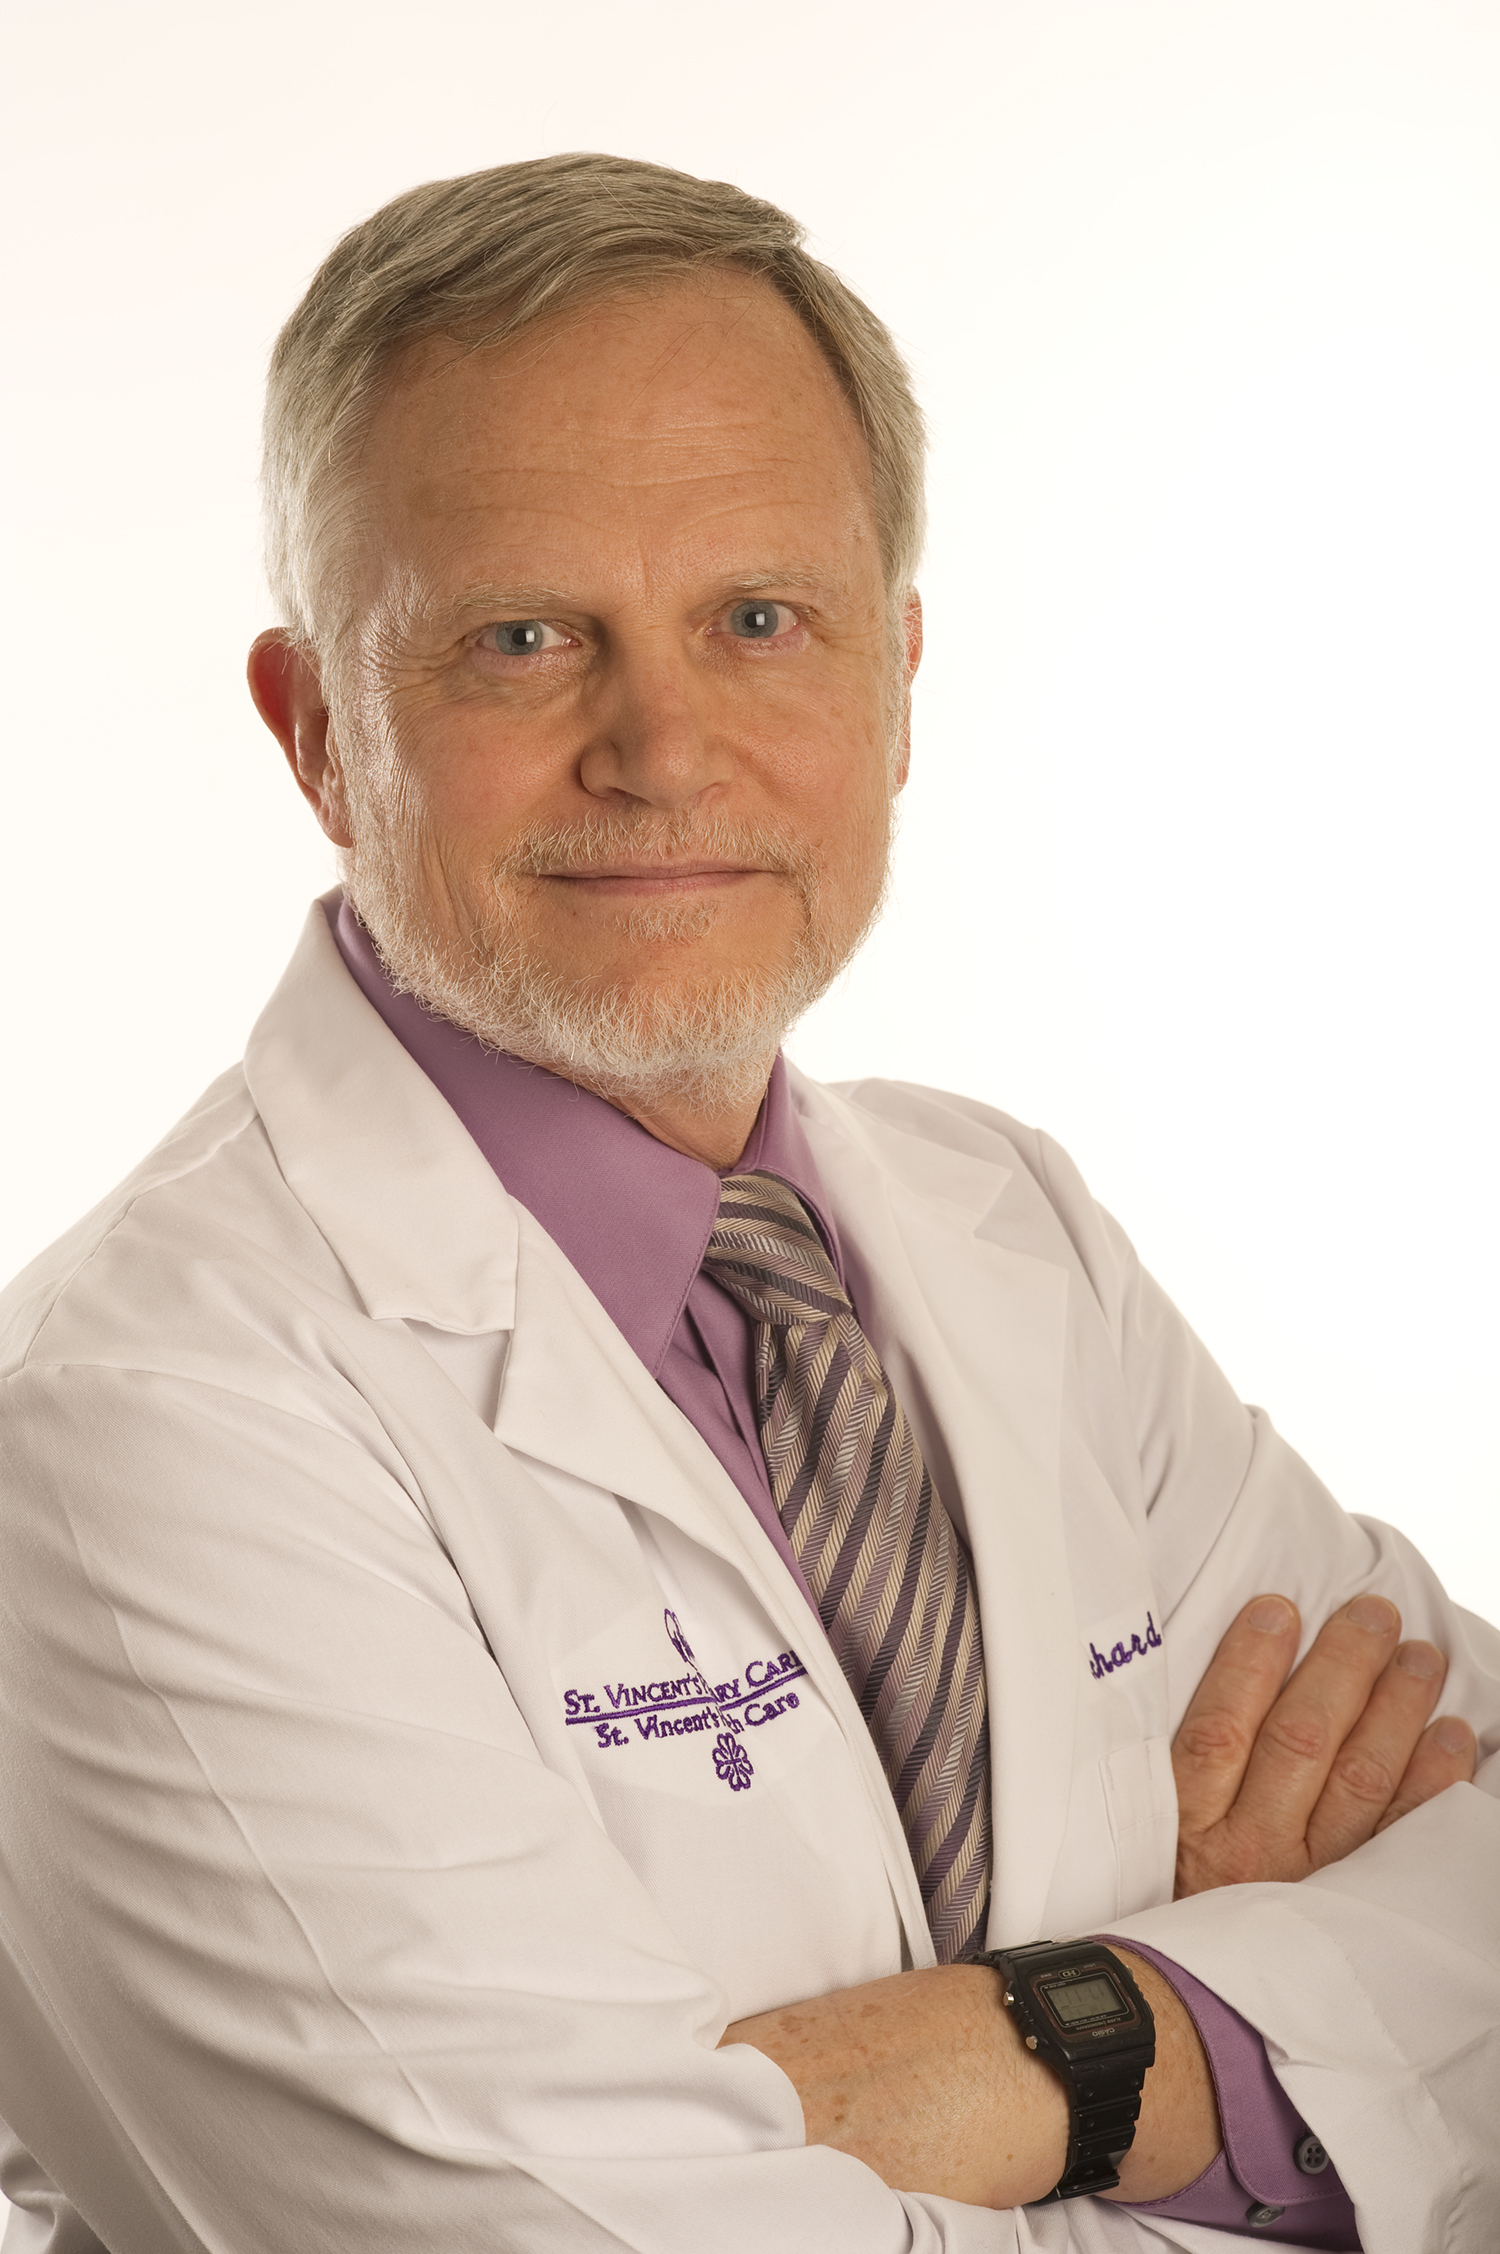 Richard Wetmore, MD